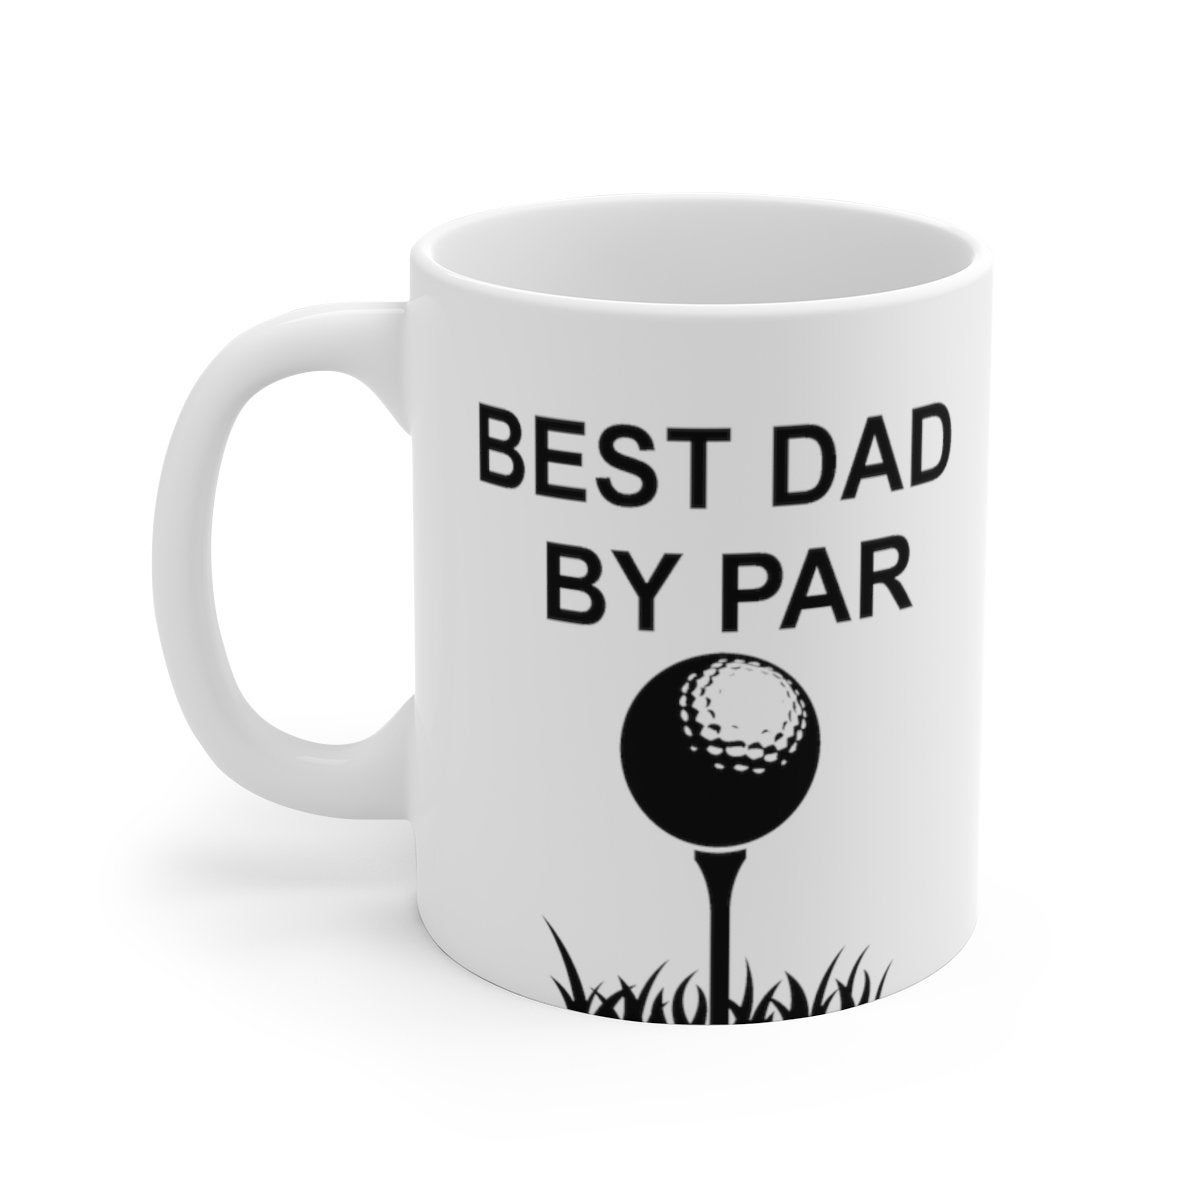 Best dad by par white ceramic fathers day mugdad gift